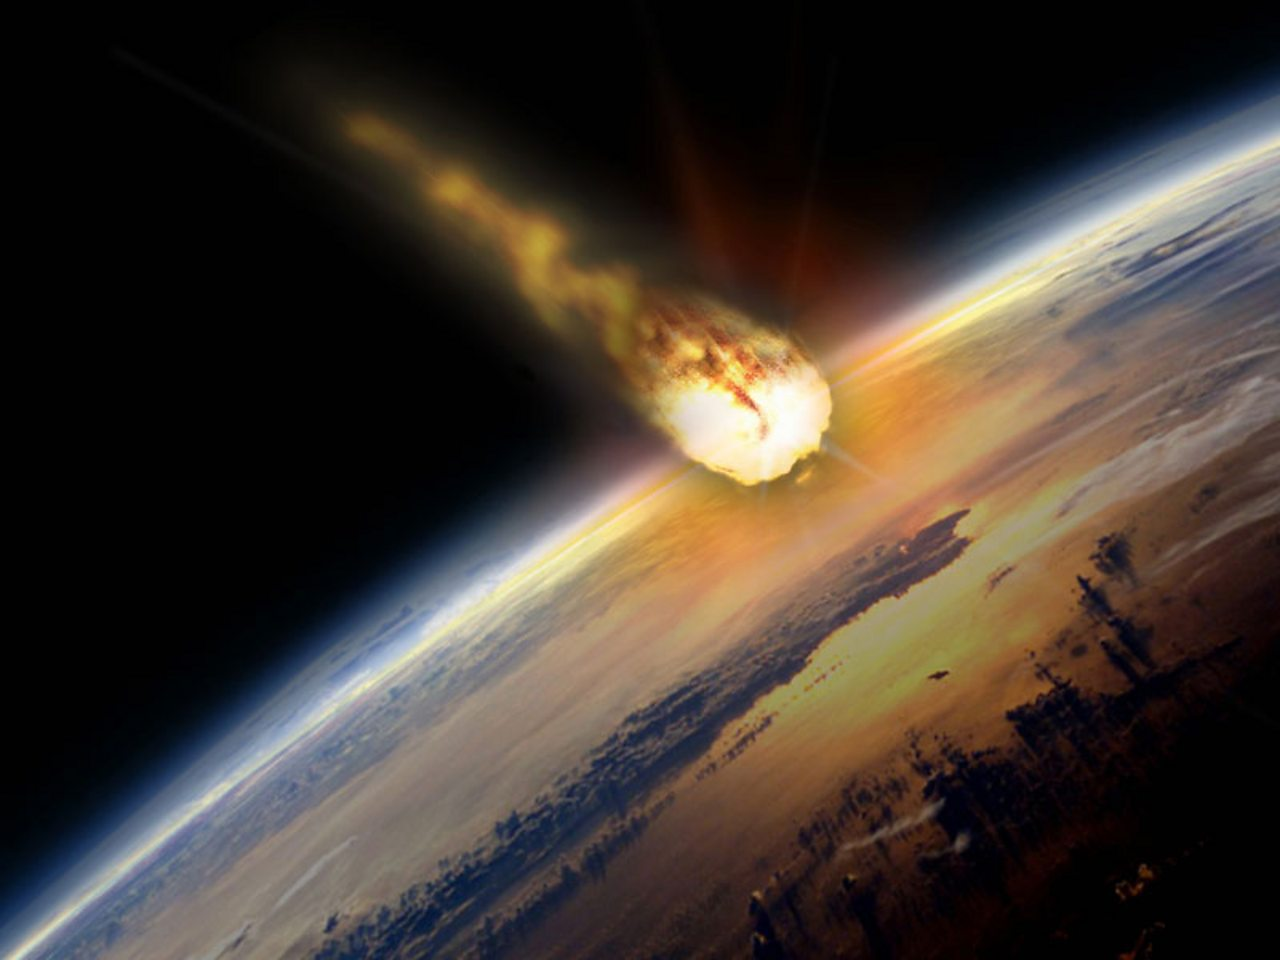 A fiery asteroid heading for earth